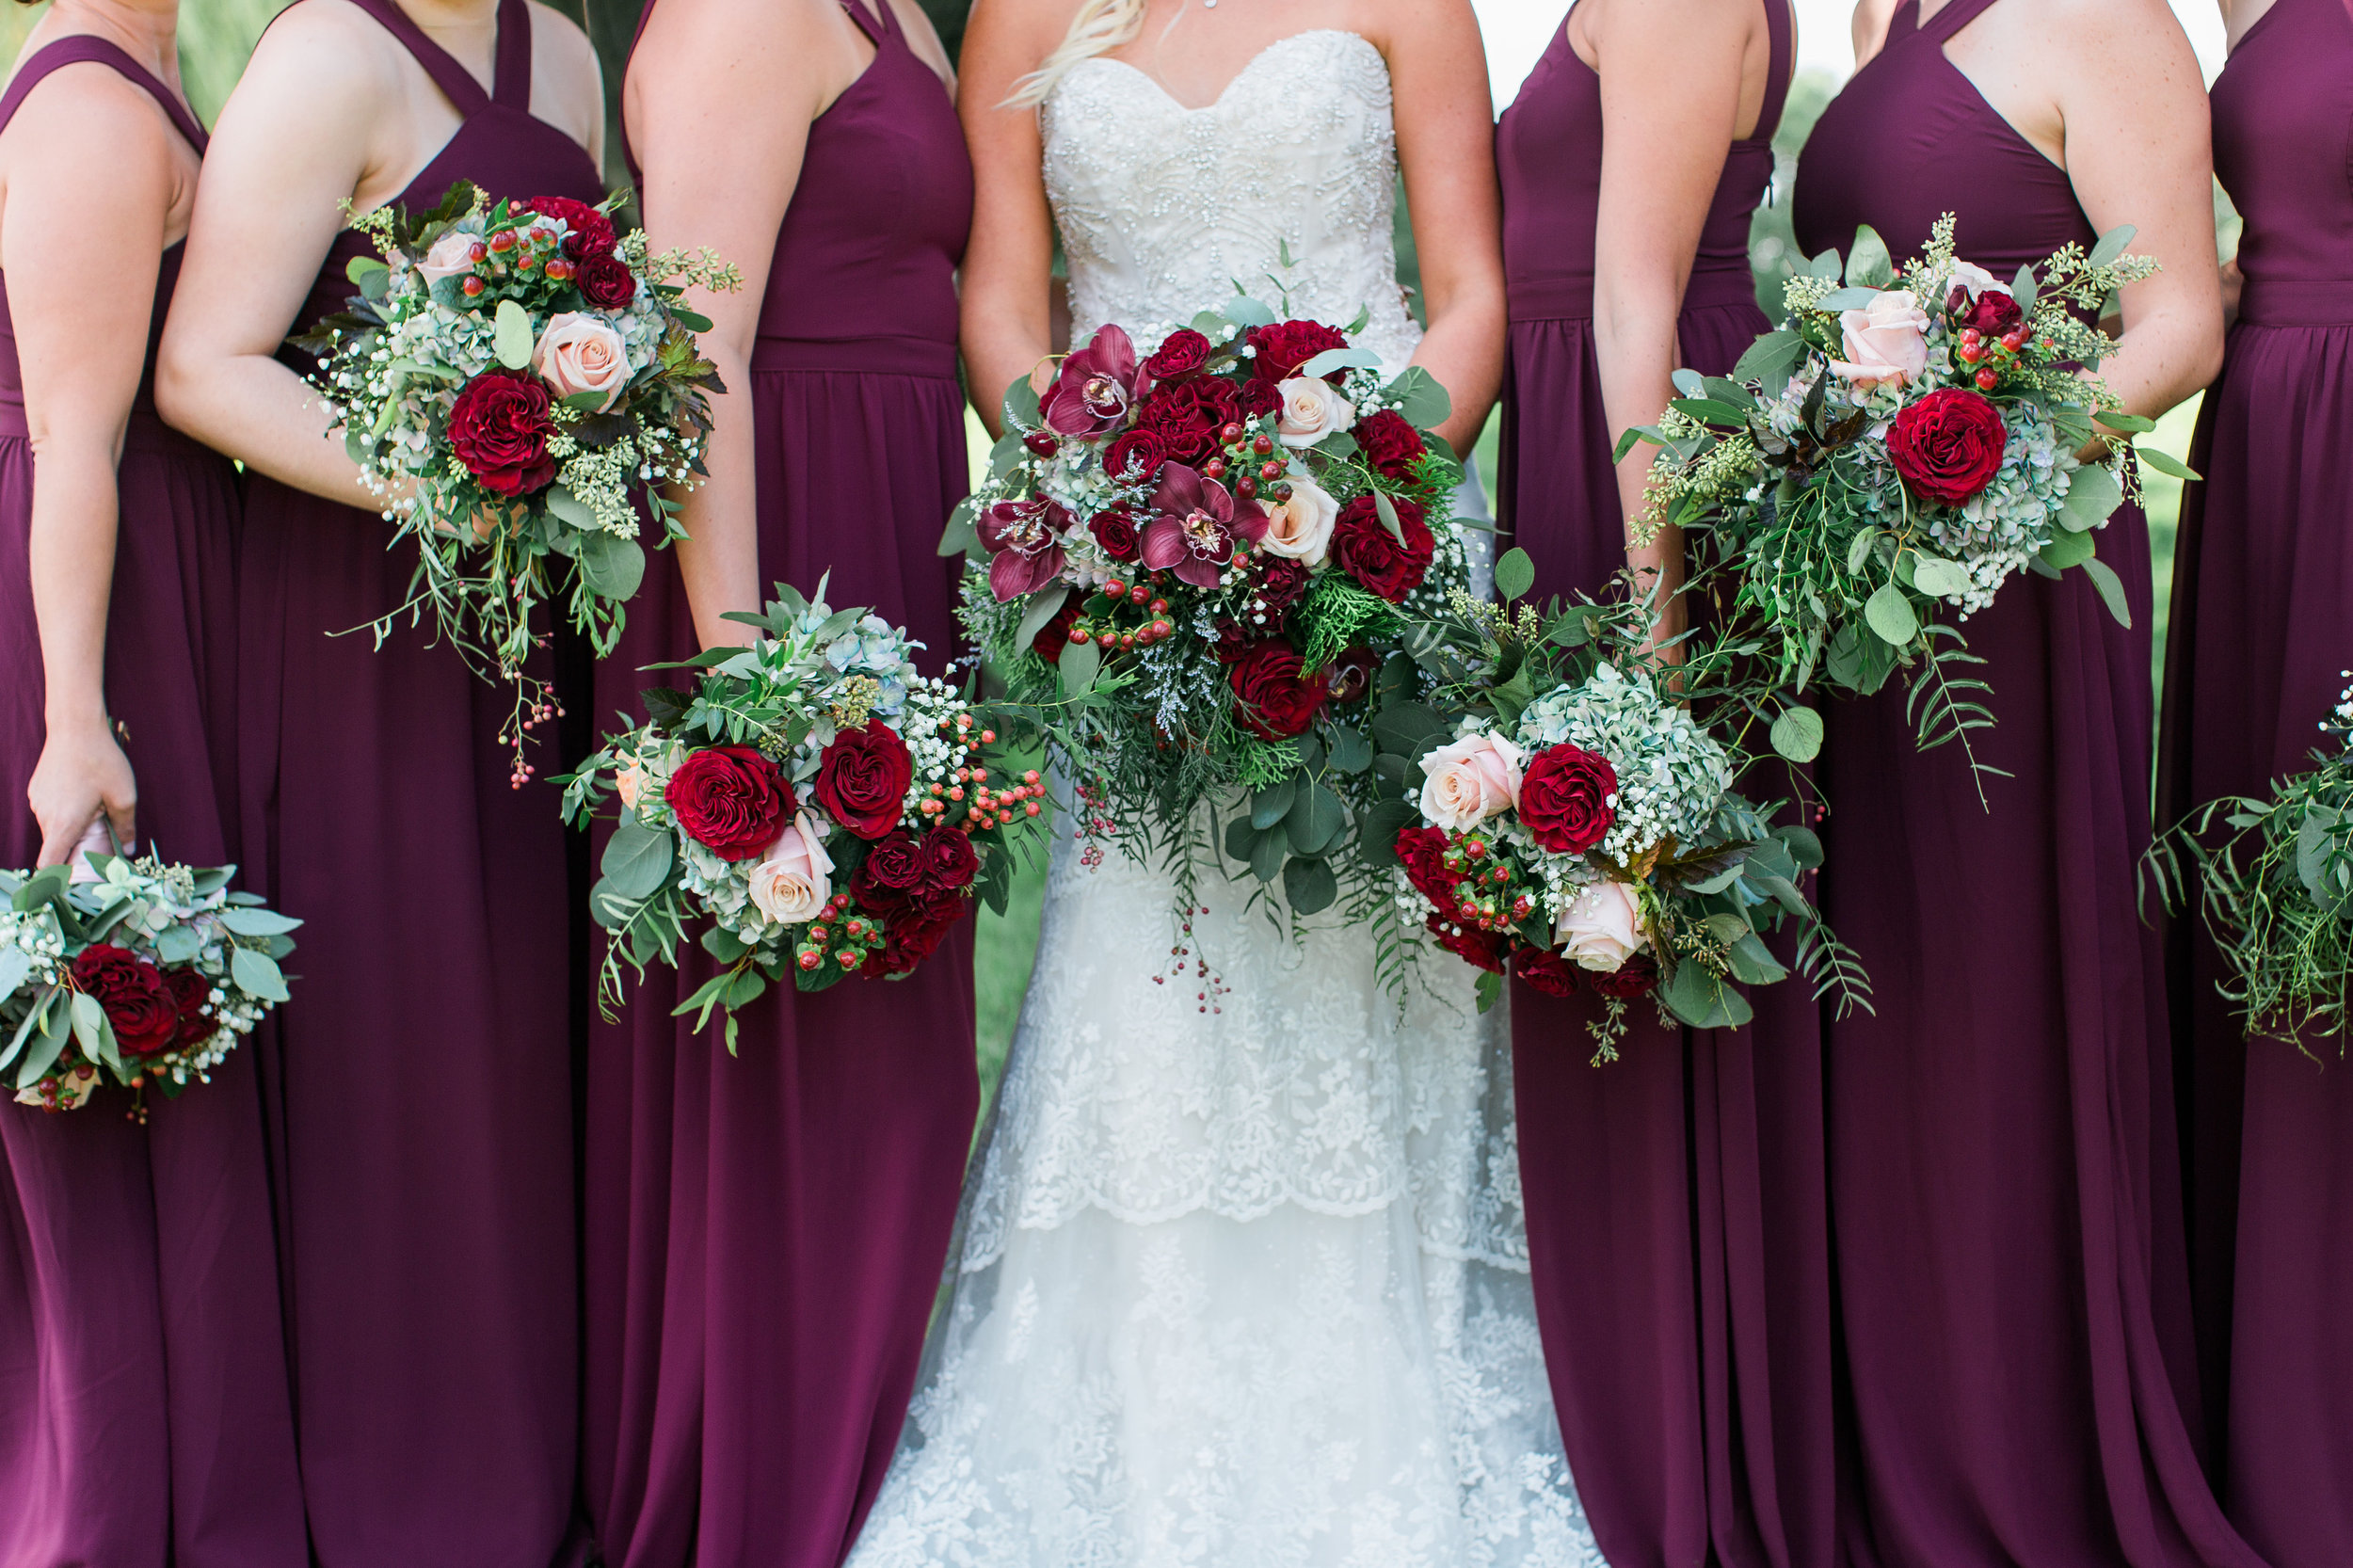 Minnesota bridesmaids in wine maroon burgundy dresses with bouquets Minnesota wedding photography Mallory Kiesow Photography